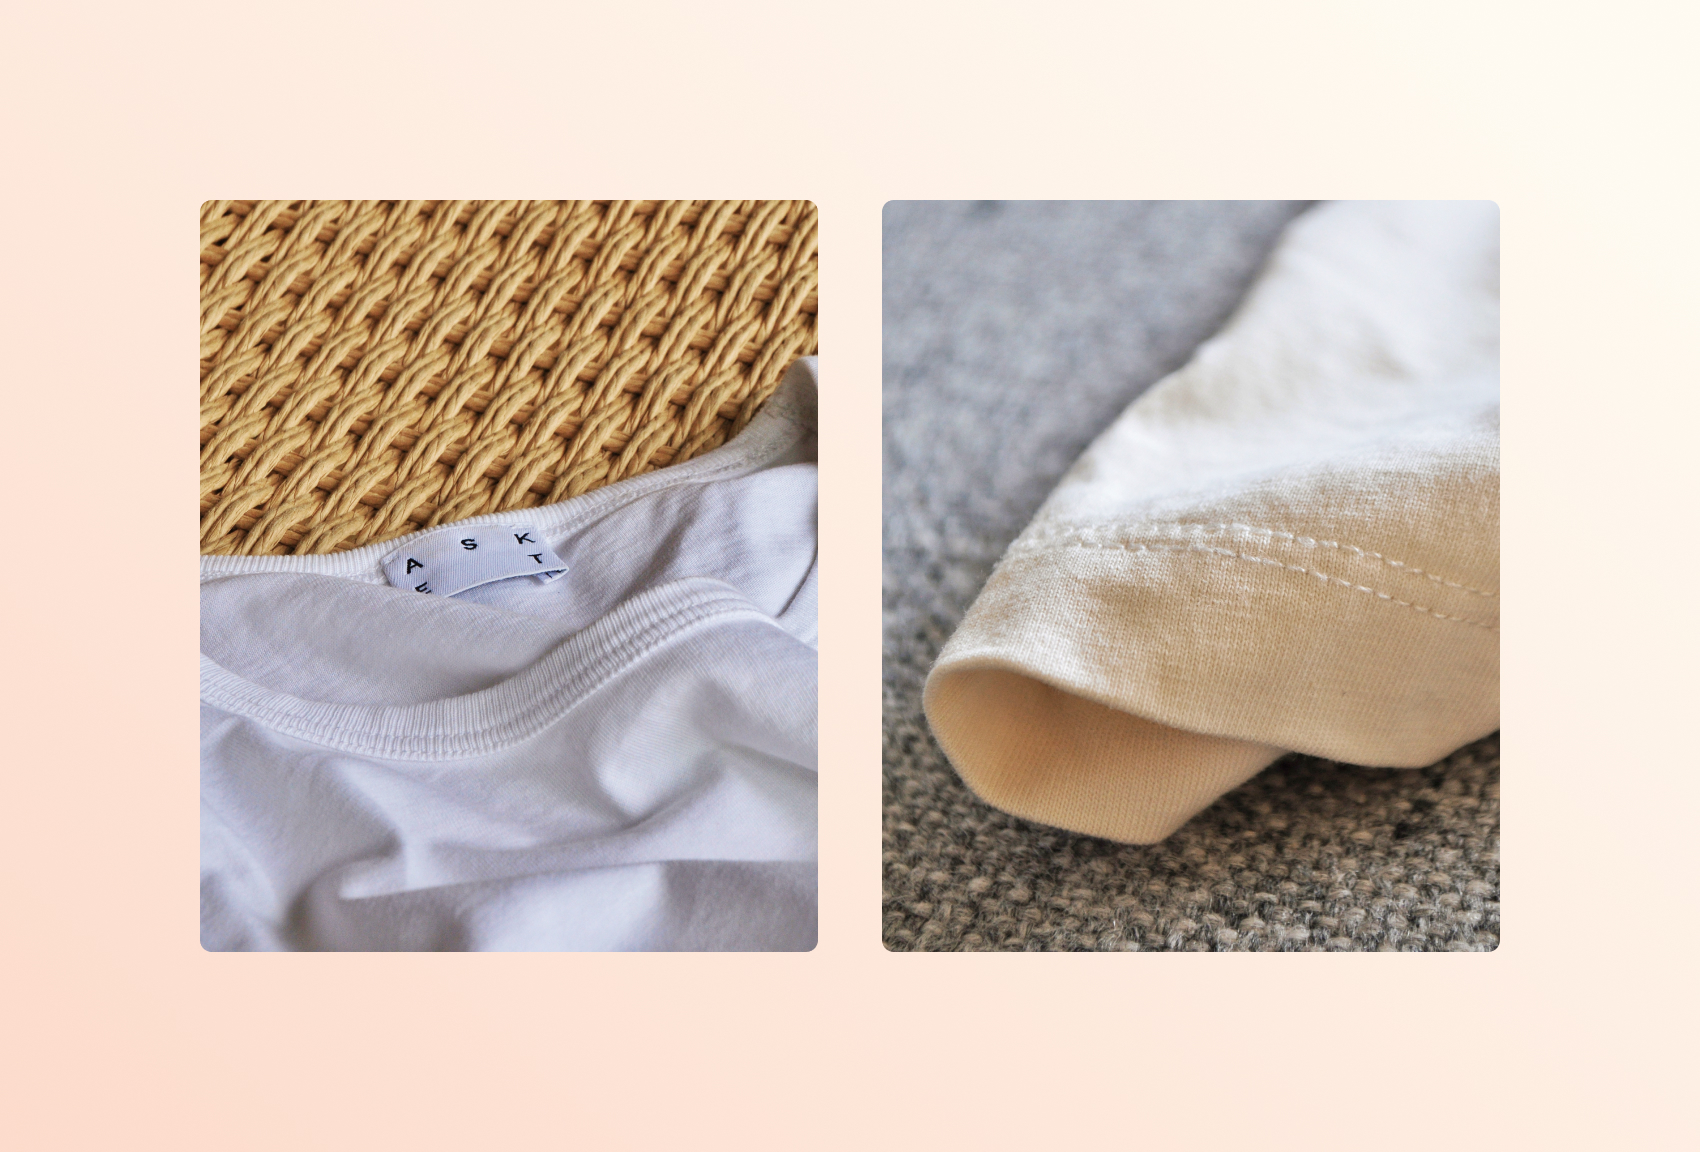 Two close-up photos of garments